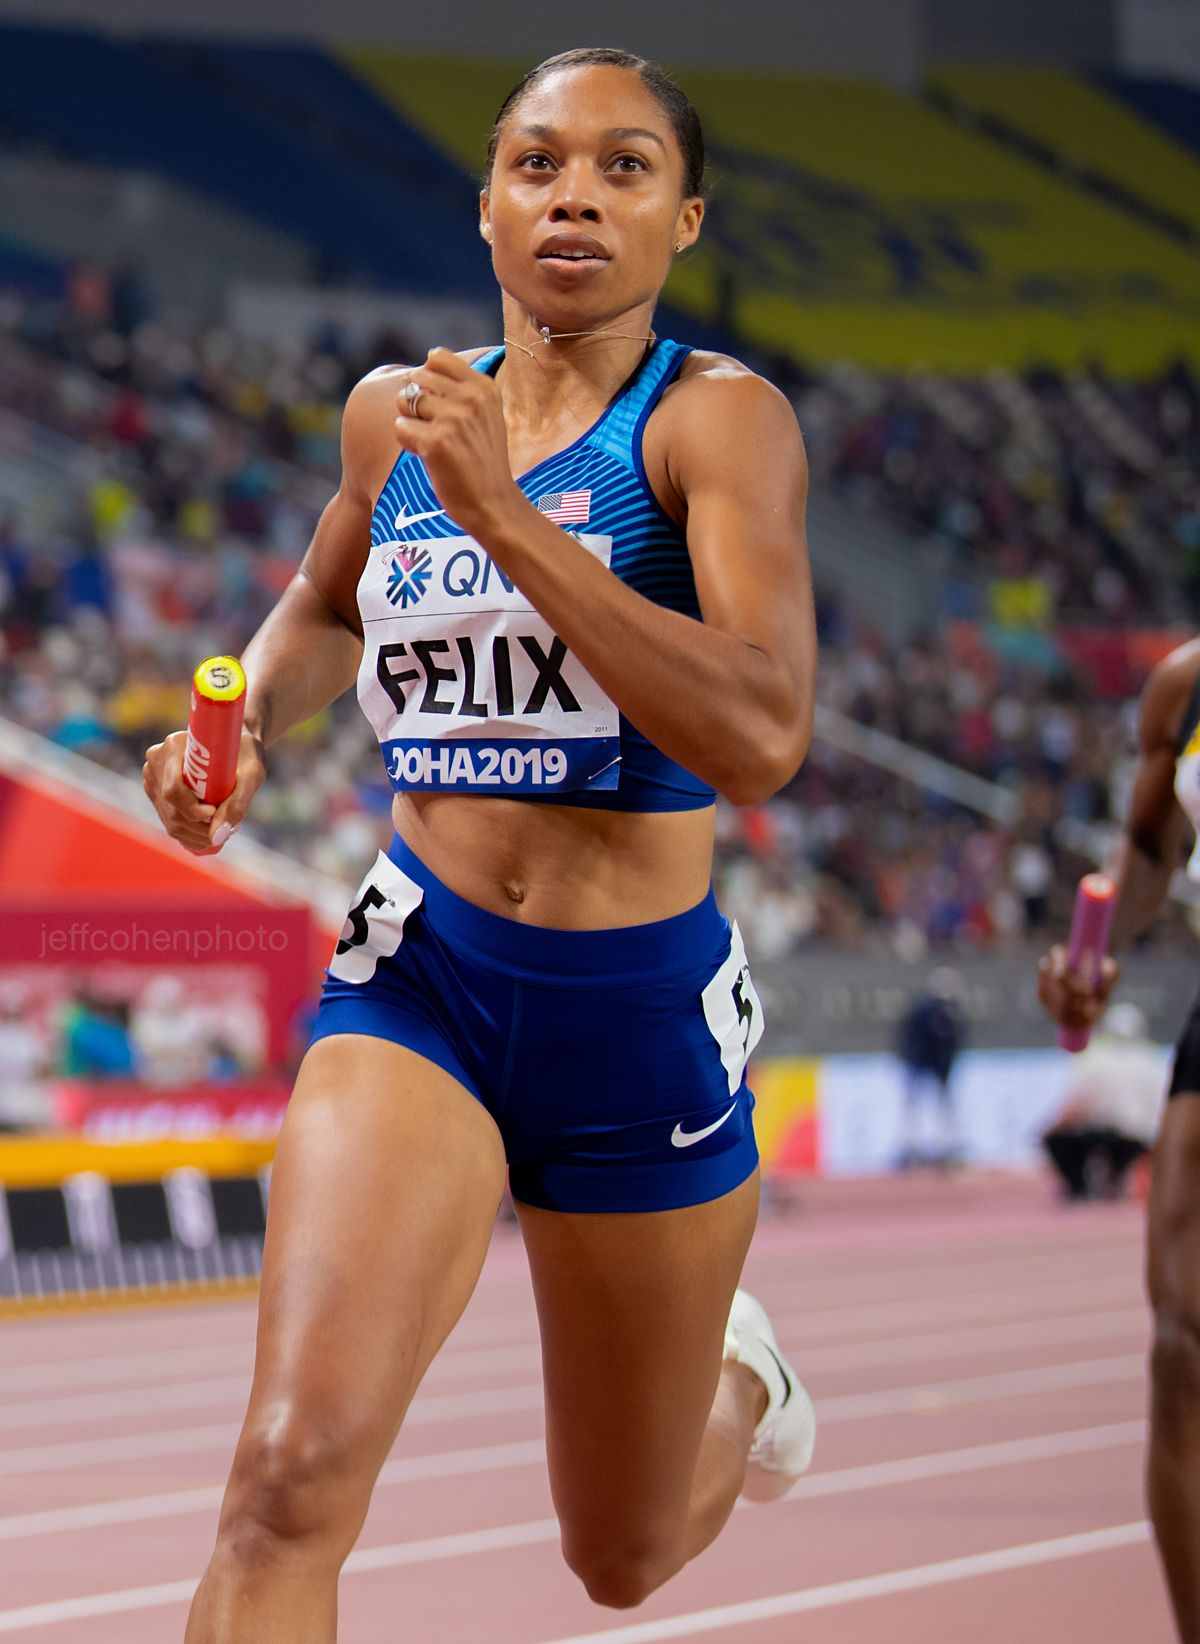 2019-DOHA-WC-day-3--2294--felix-4x4-mix-jeff-cohen-photo--web.jpg